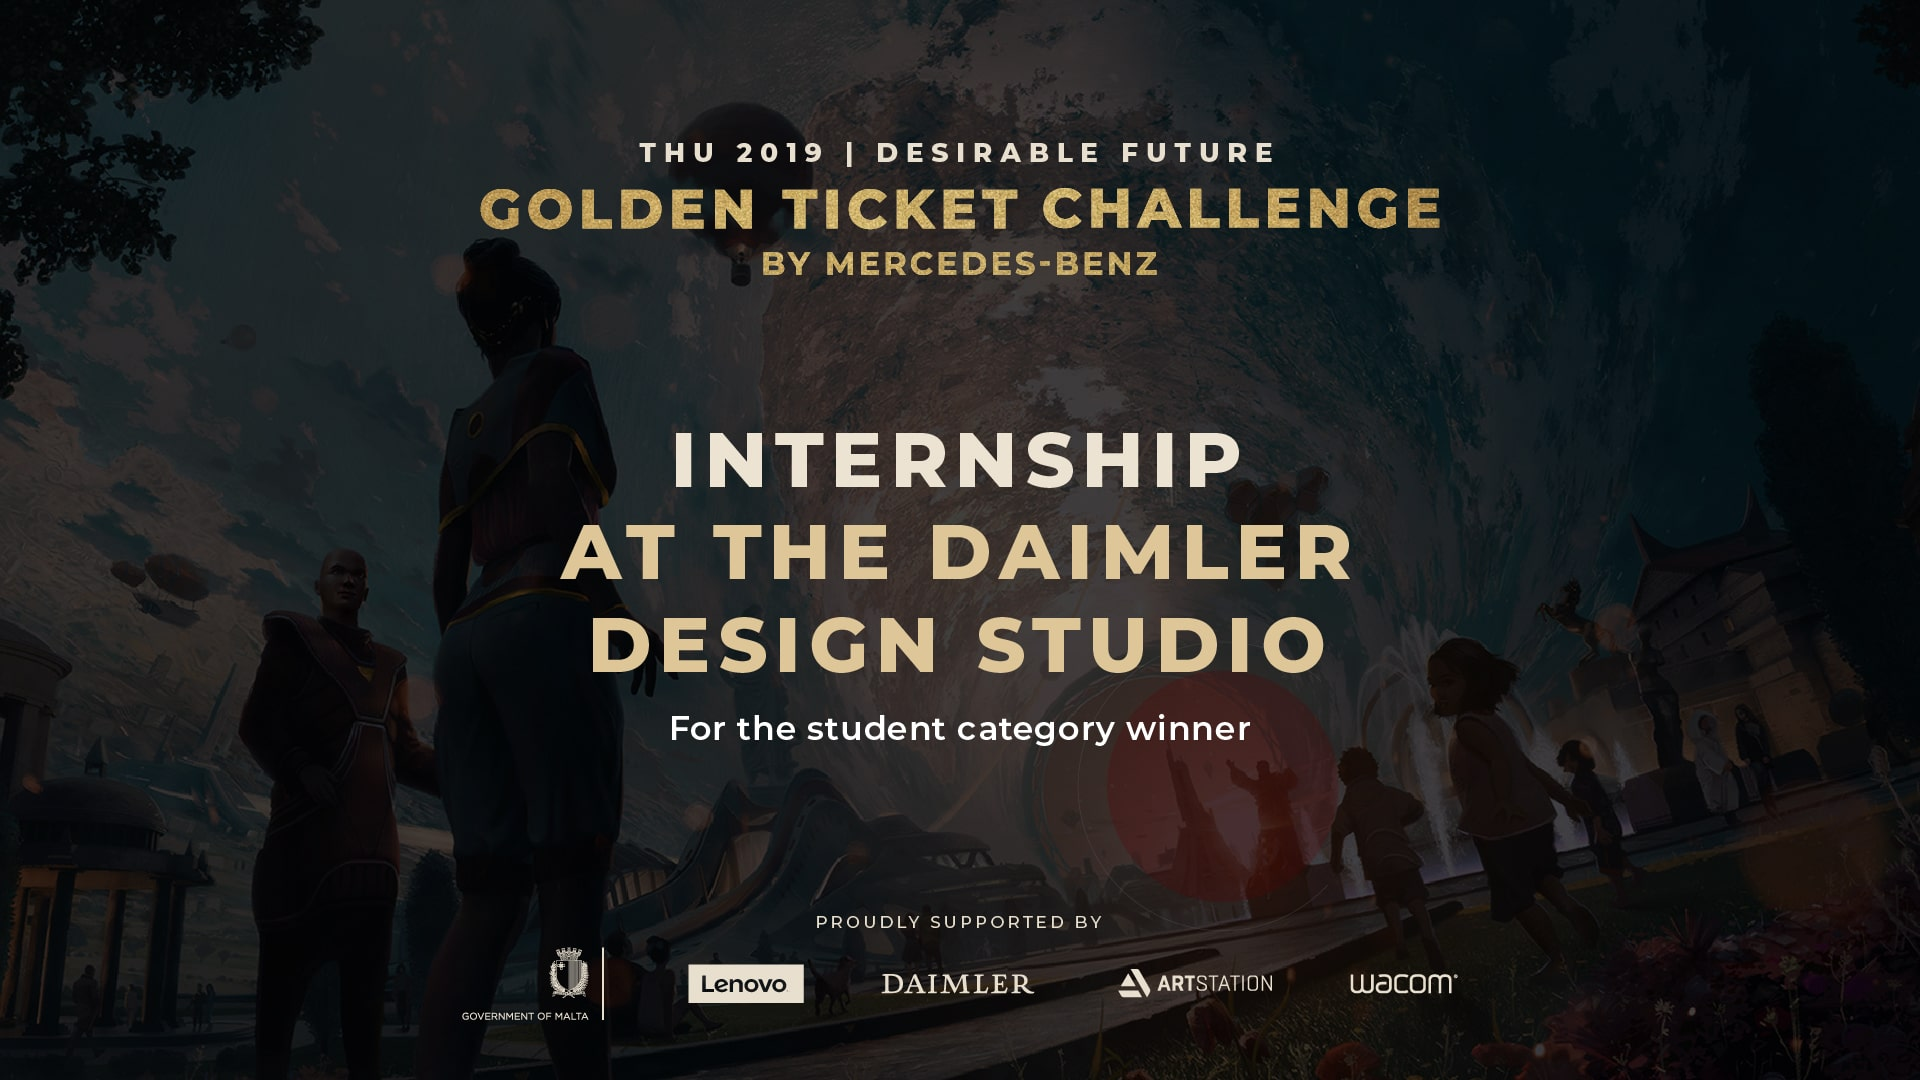 Golden ticket 2019 website article